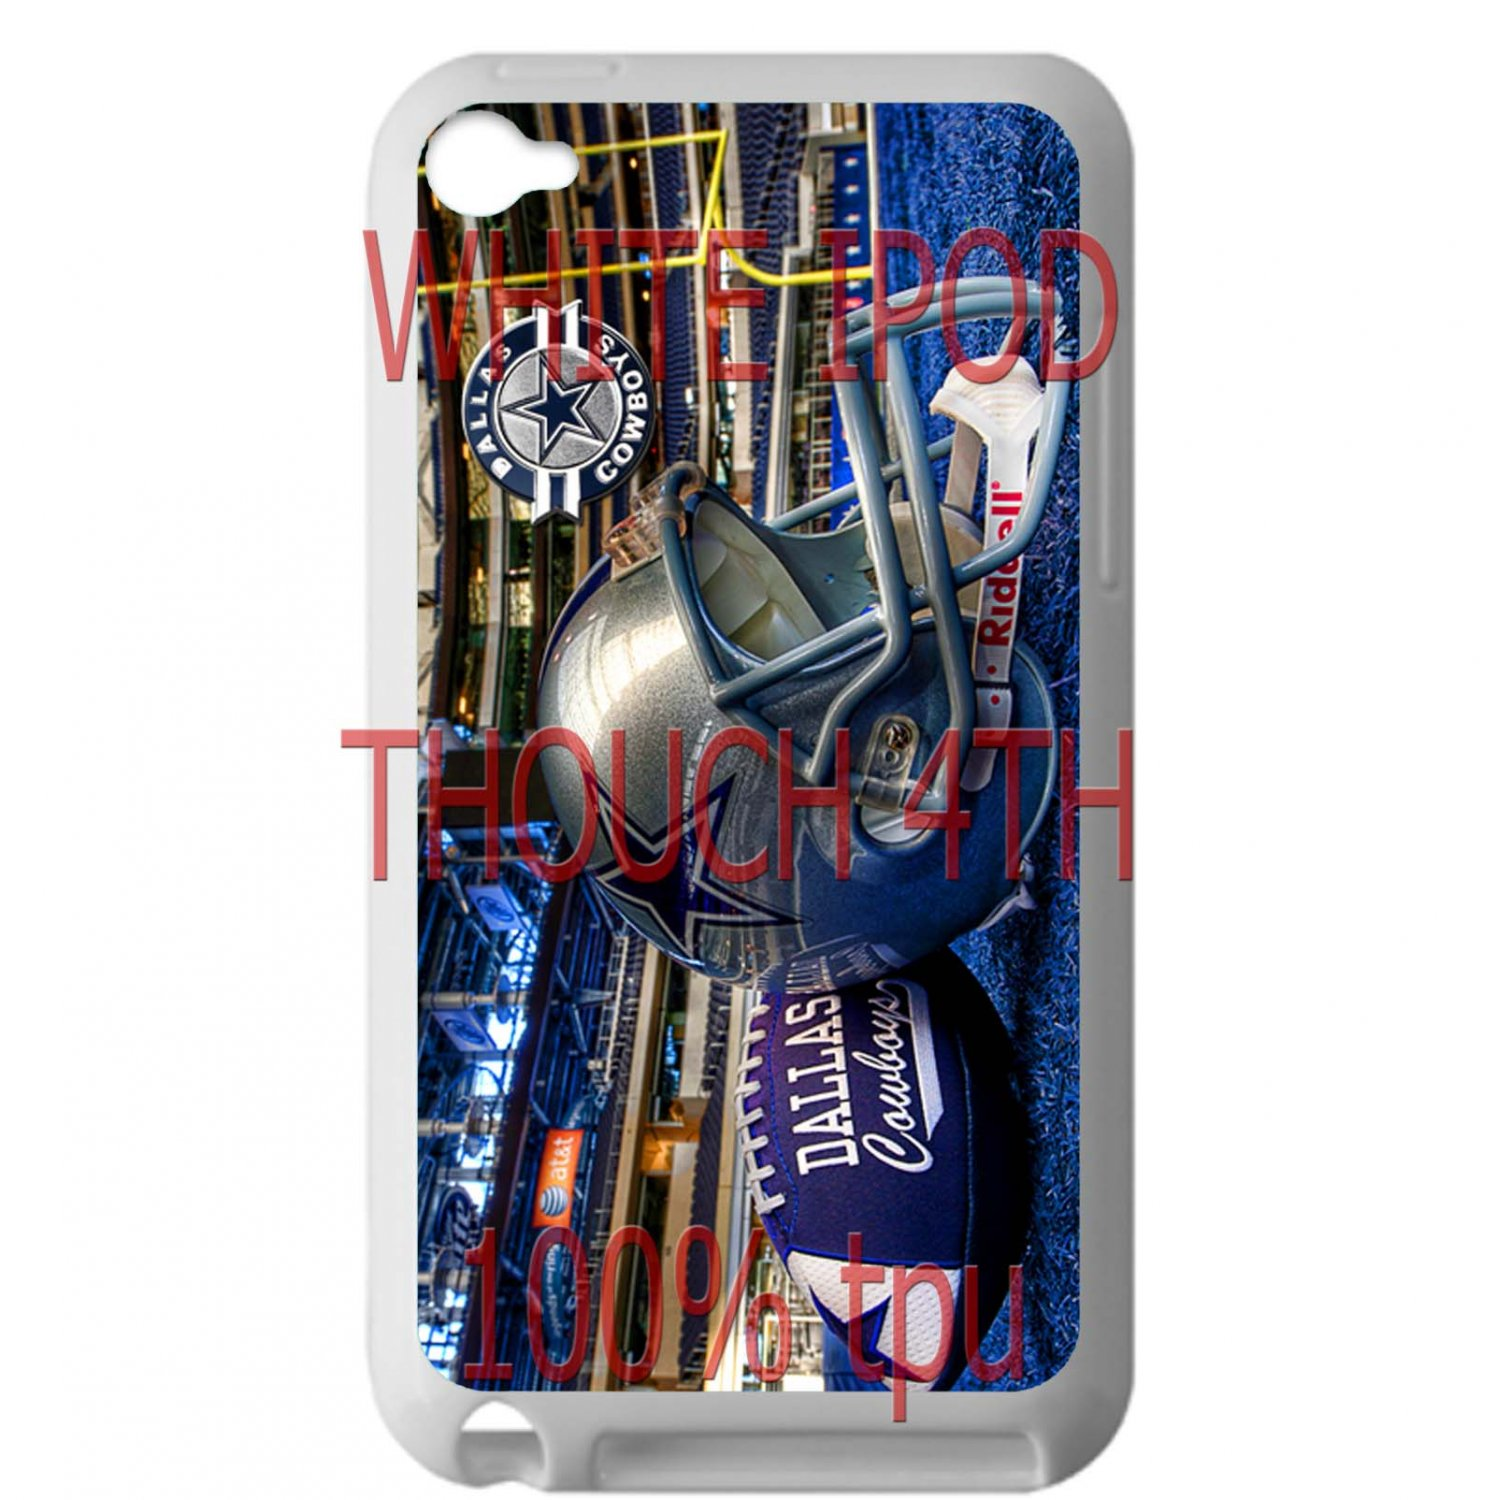 Dallas Cowboys riddell football fit for ipod touch 4 white case cover